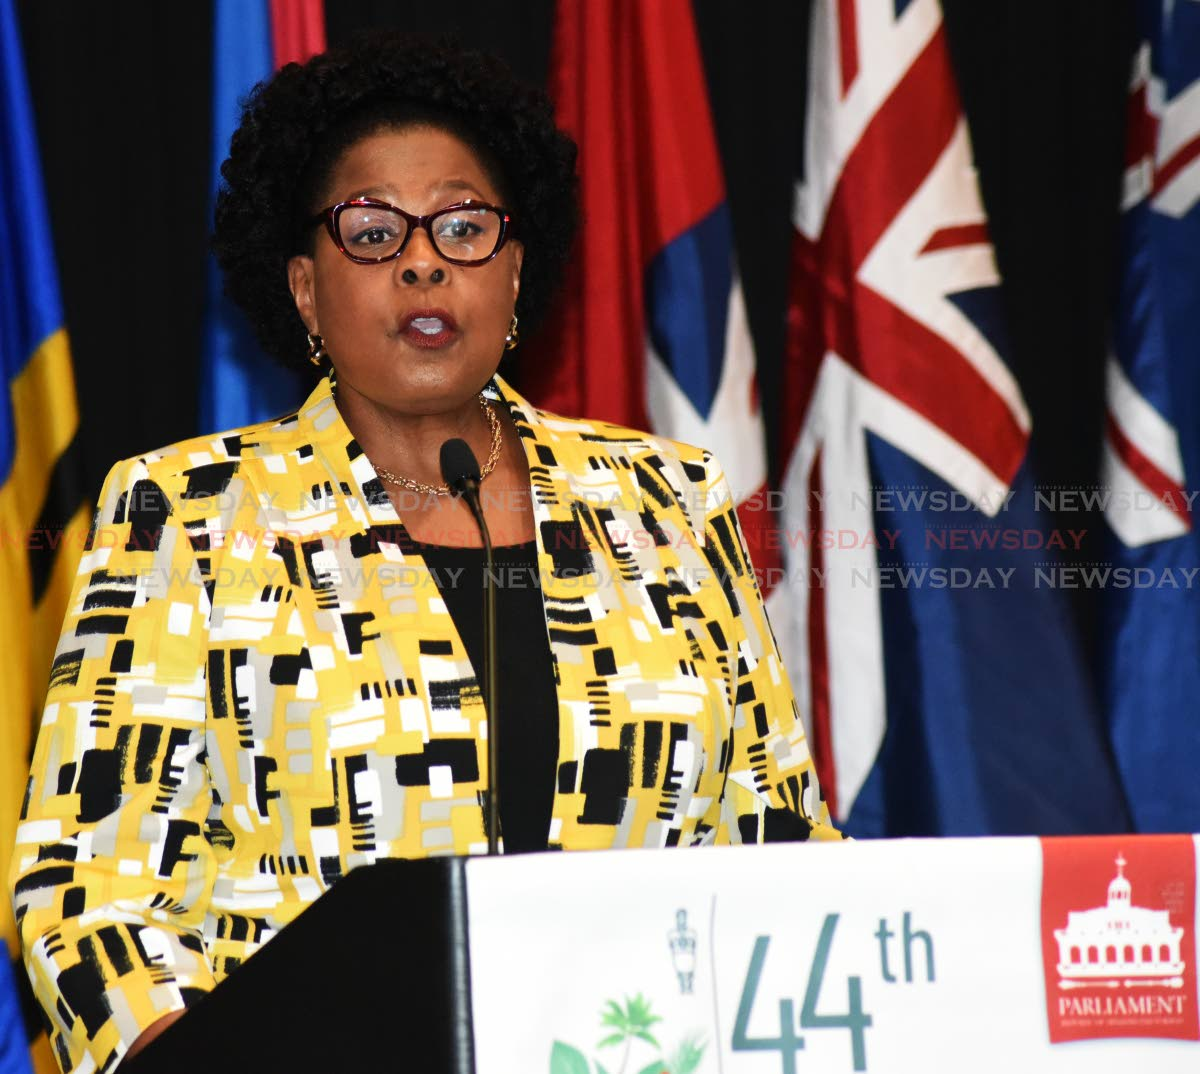 TT President Paula-Mae Weekes addresses the 44th annual Conference of the Caribbean Americas and the Atlantic Region of the Commonwealth Parliamentary at Hyatt Regency, Port of Spain. Photo by Kerwin Pierre